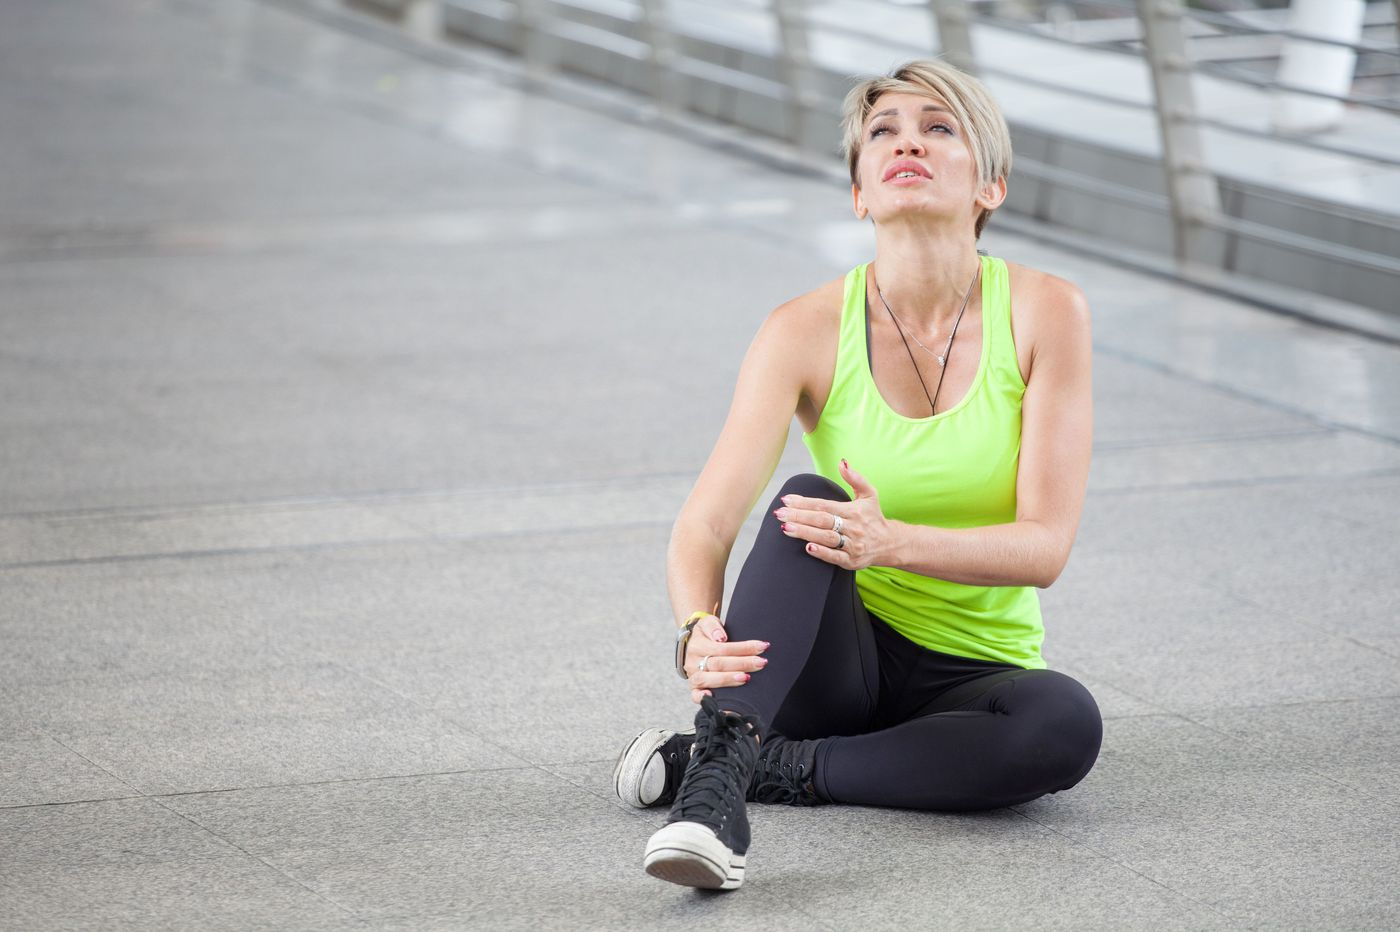 Does intermittent knee pain mean you should stop running?